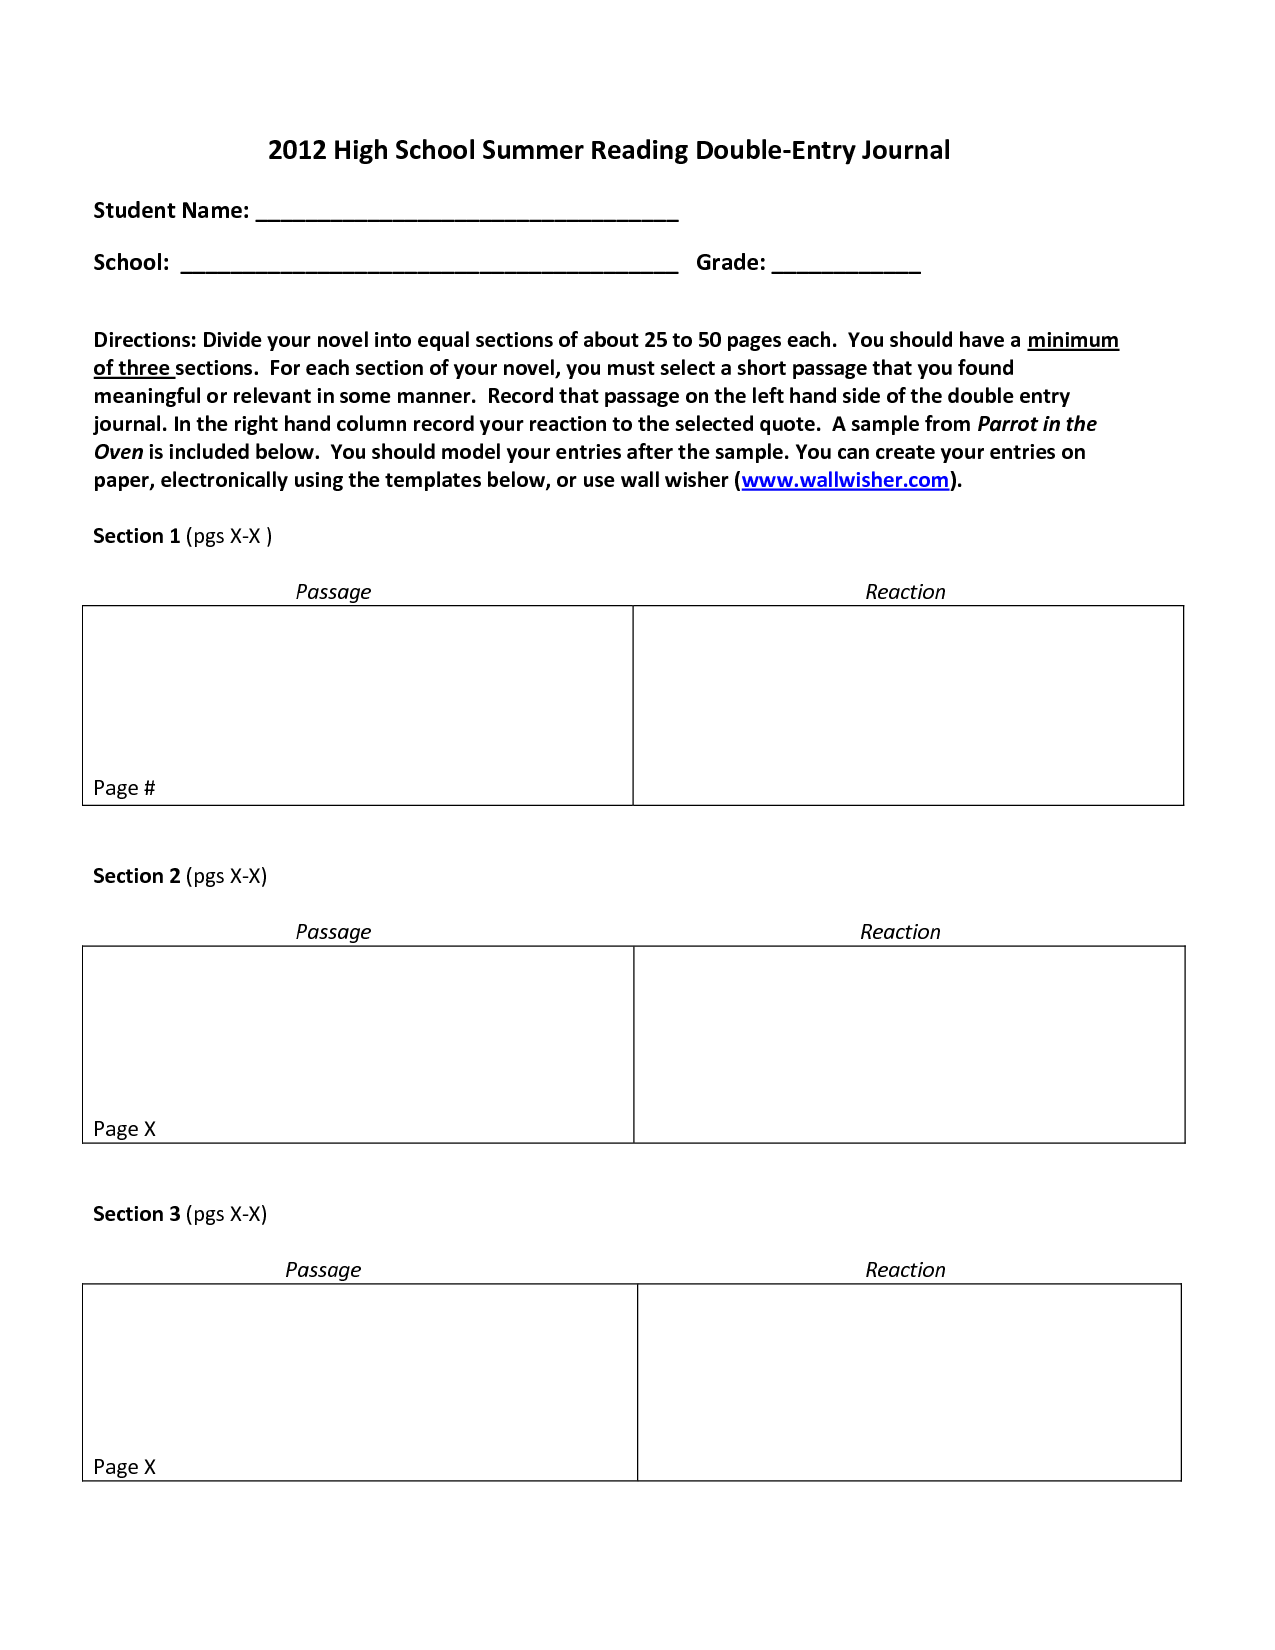 worksheet Reading Log Worksheets reading log template high school summer journal and template